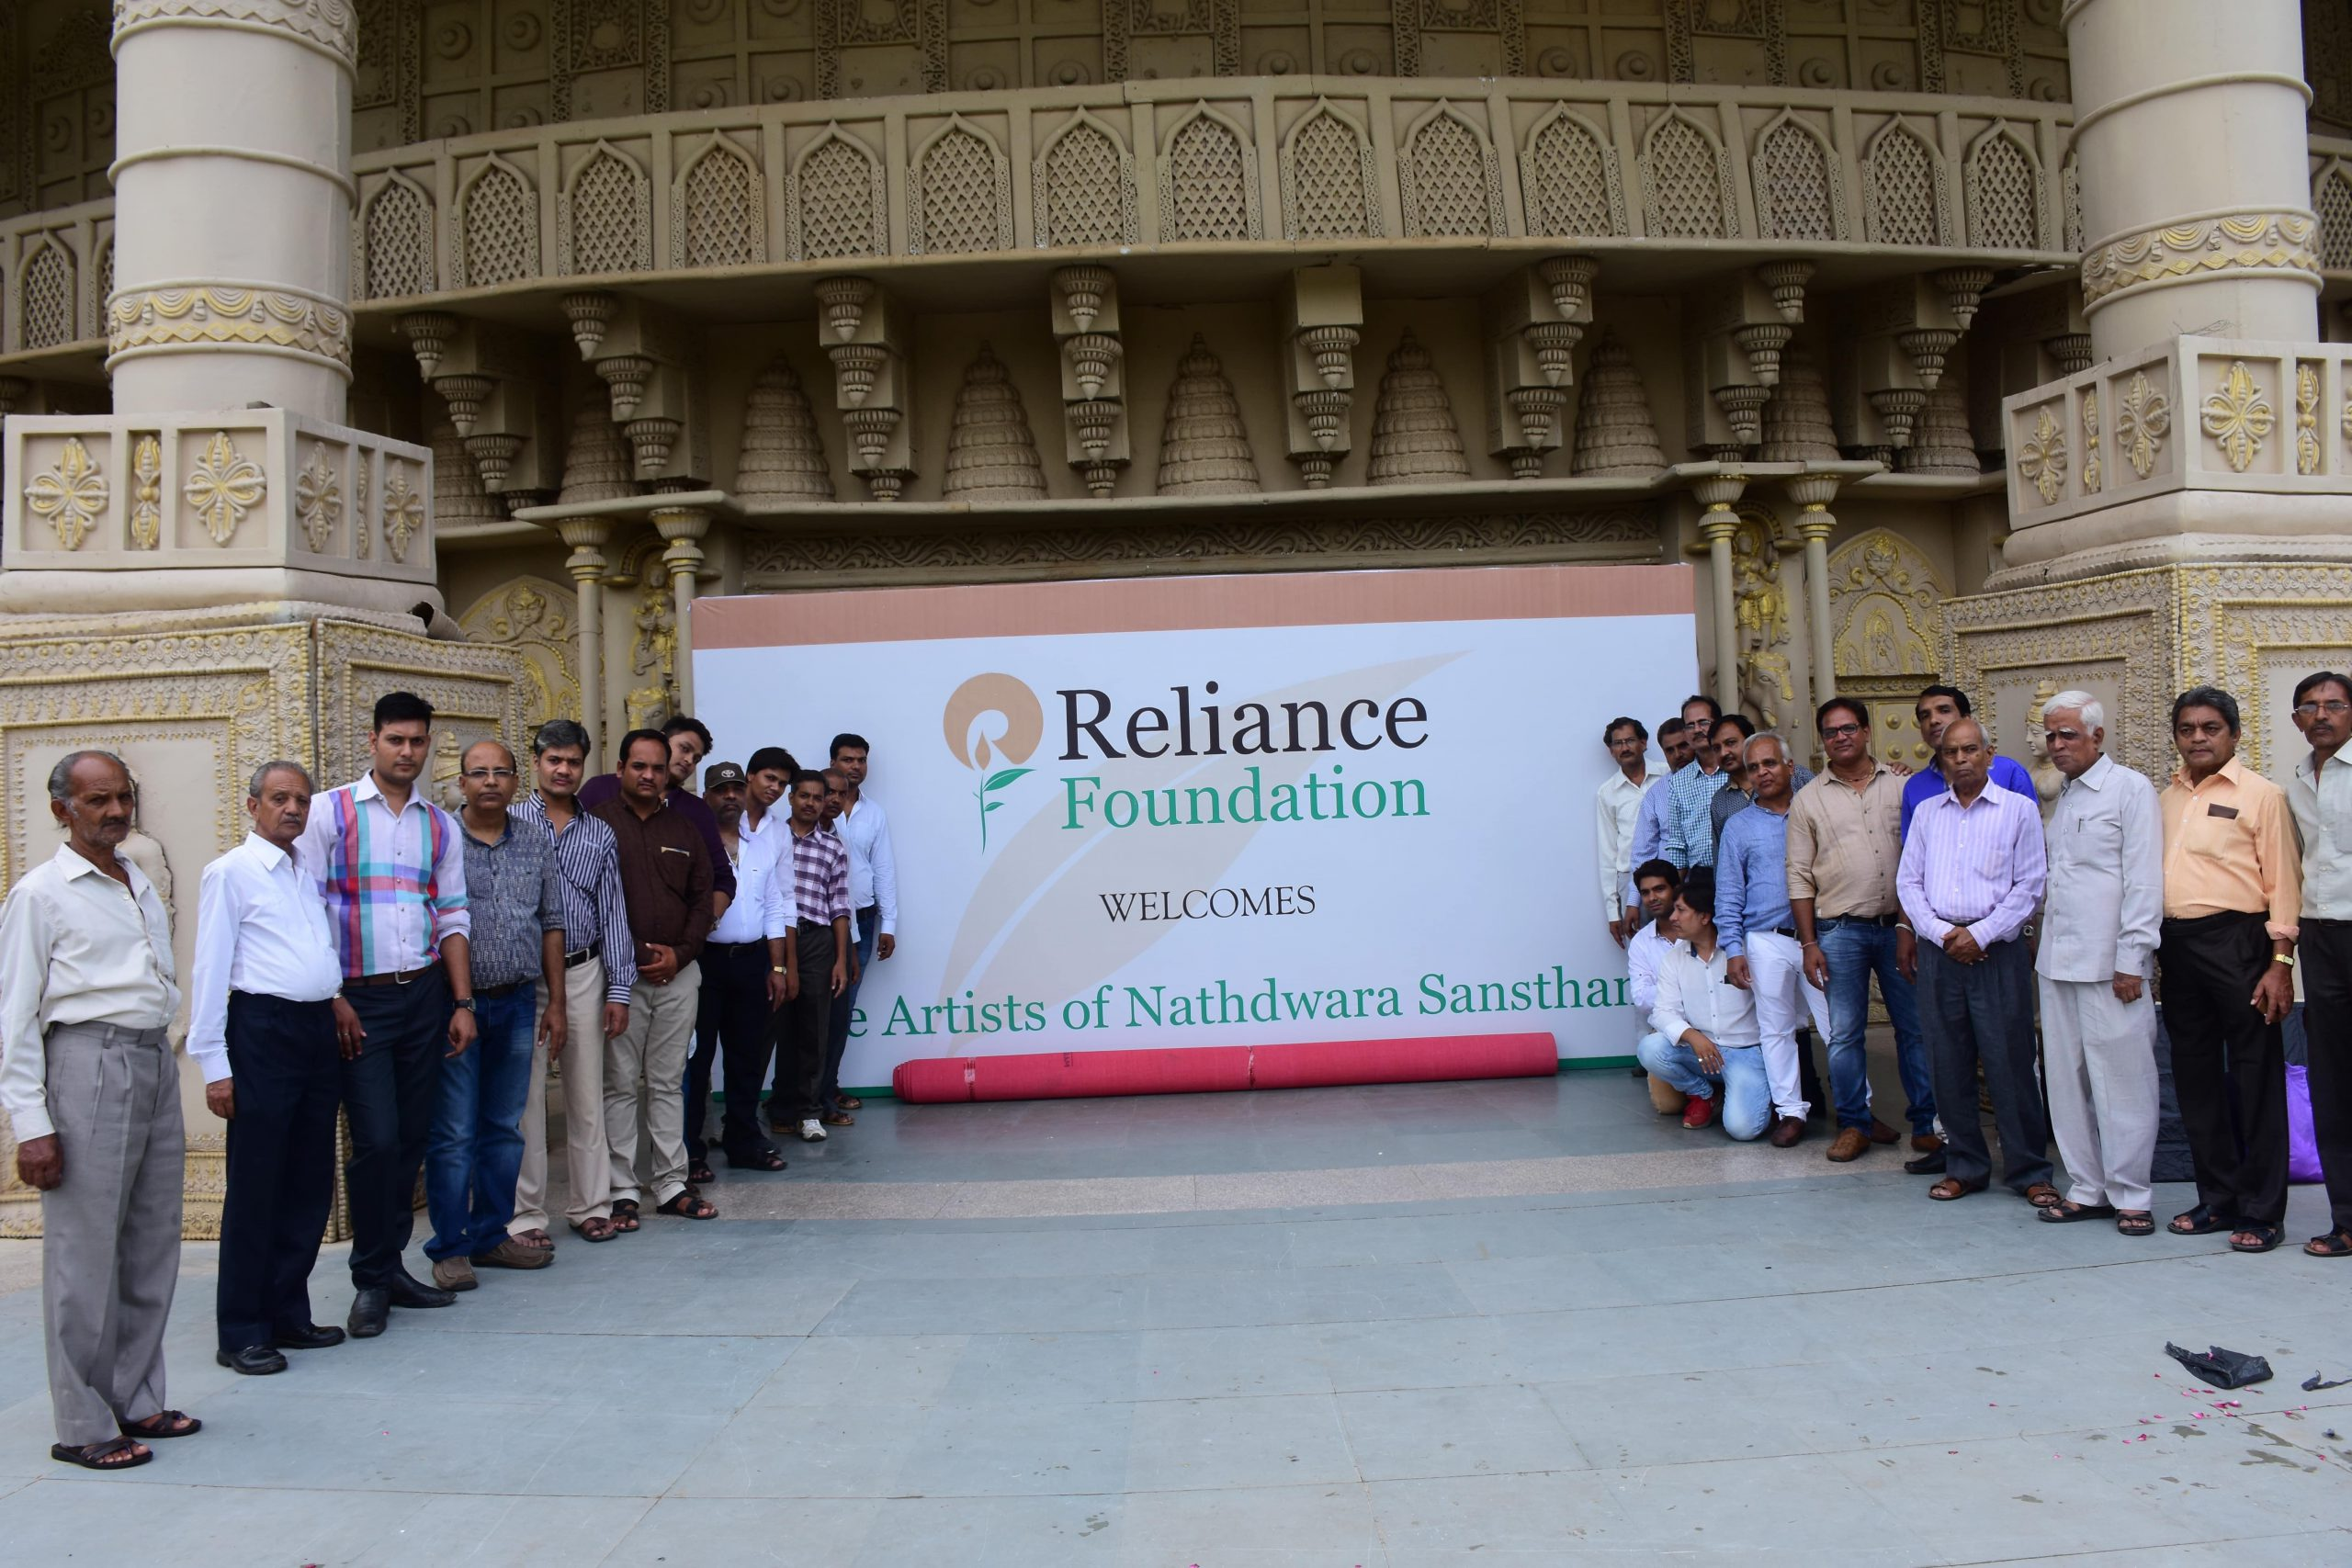 Reliance Foundation Event